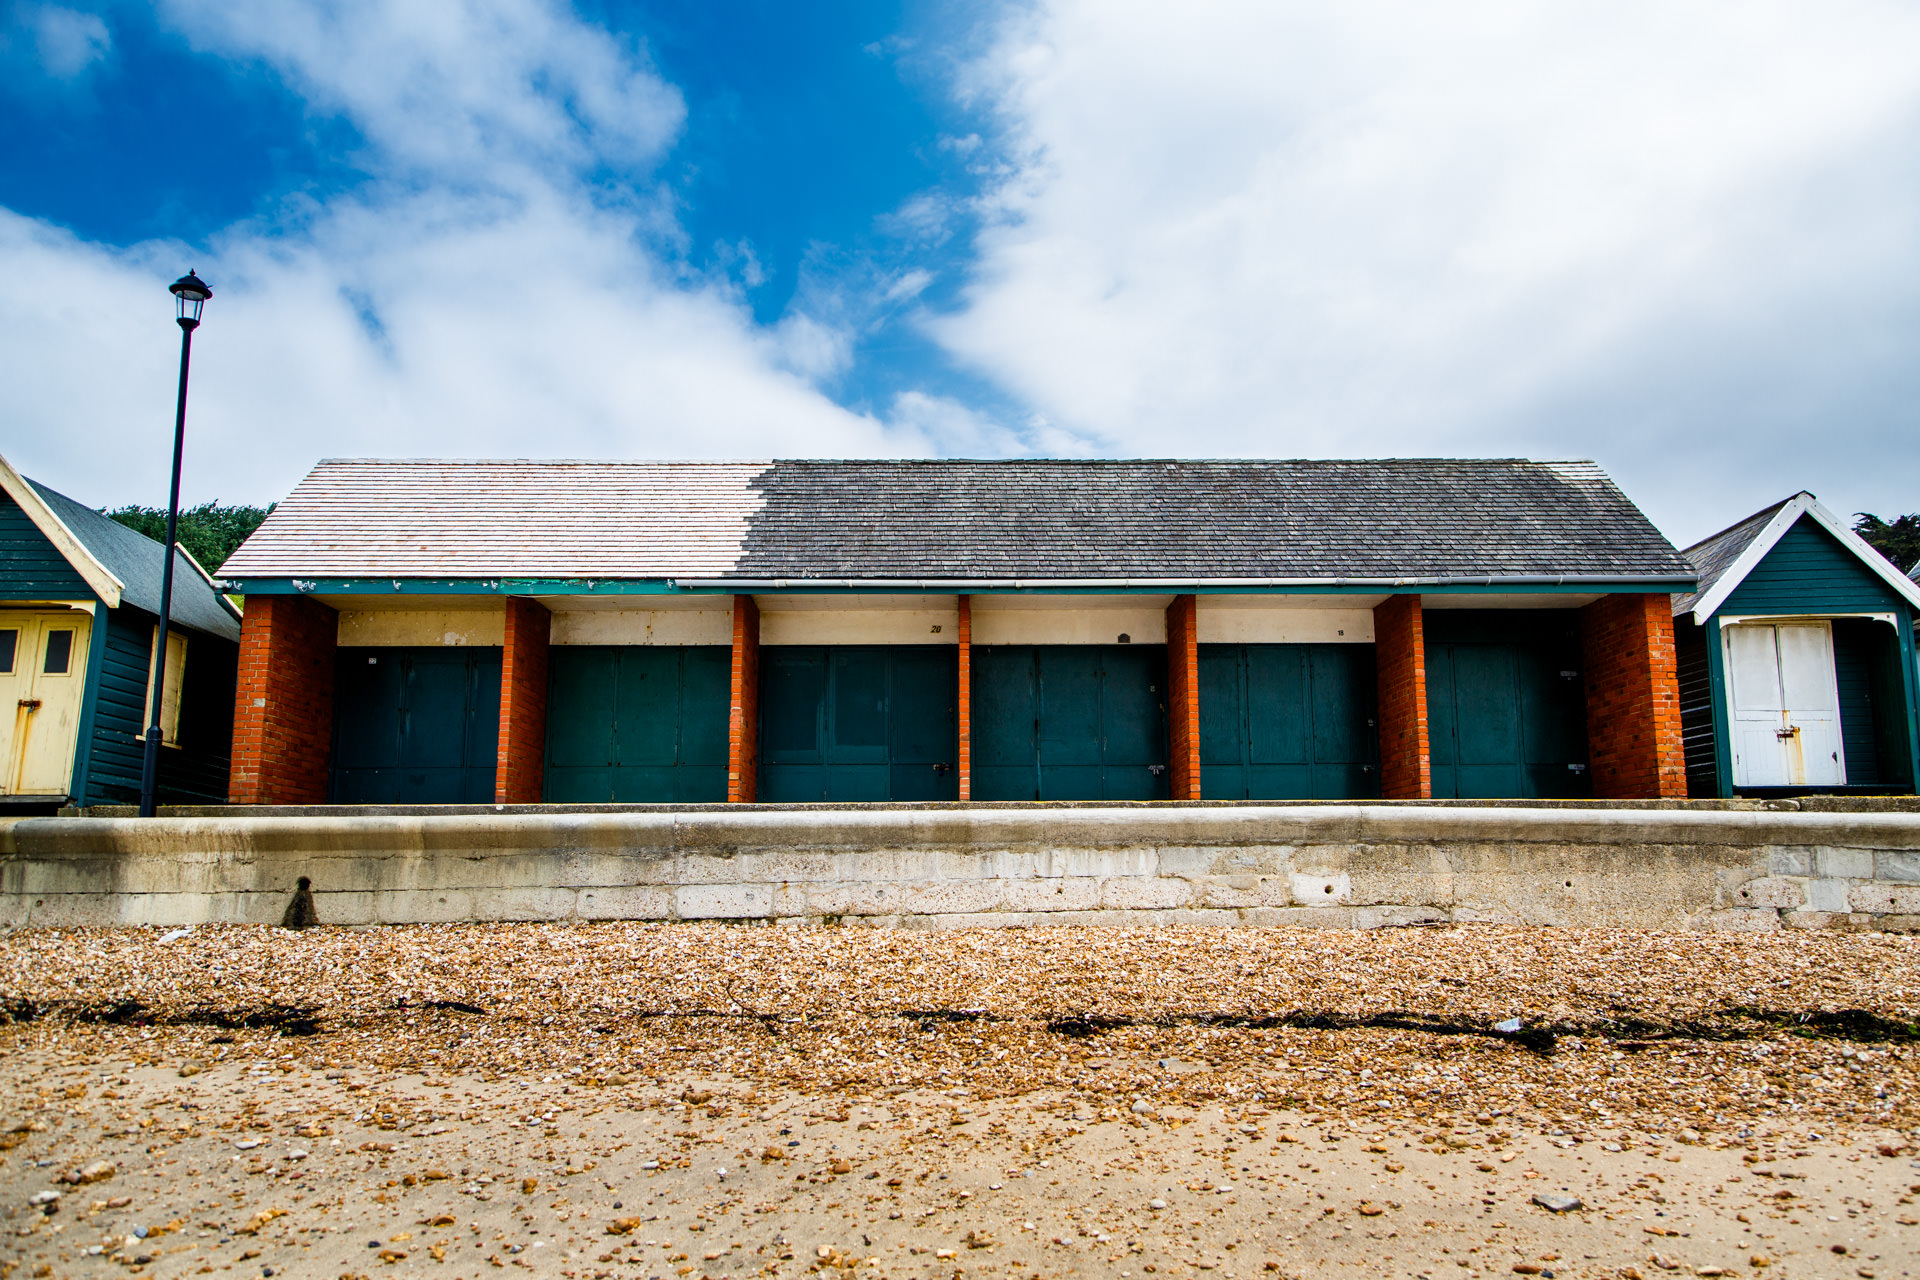 Beach huts line part of the Cowes coast.